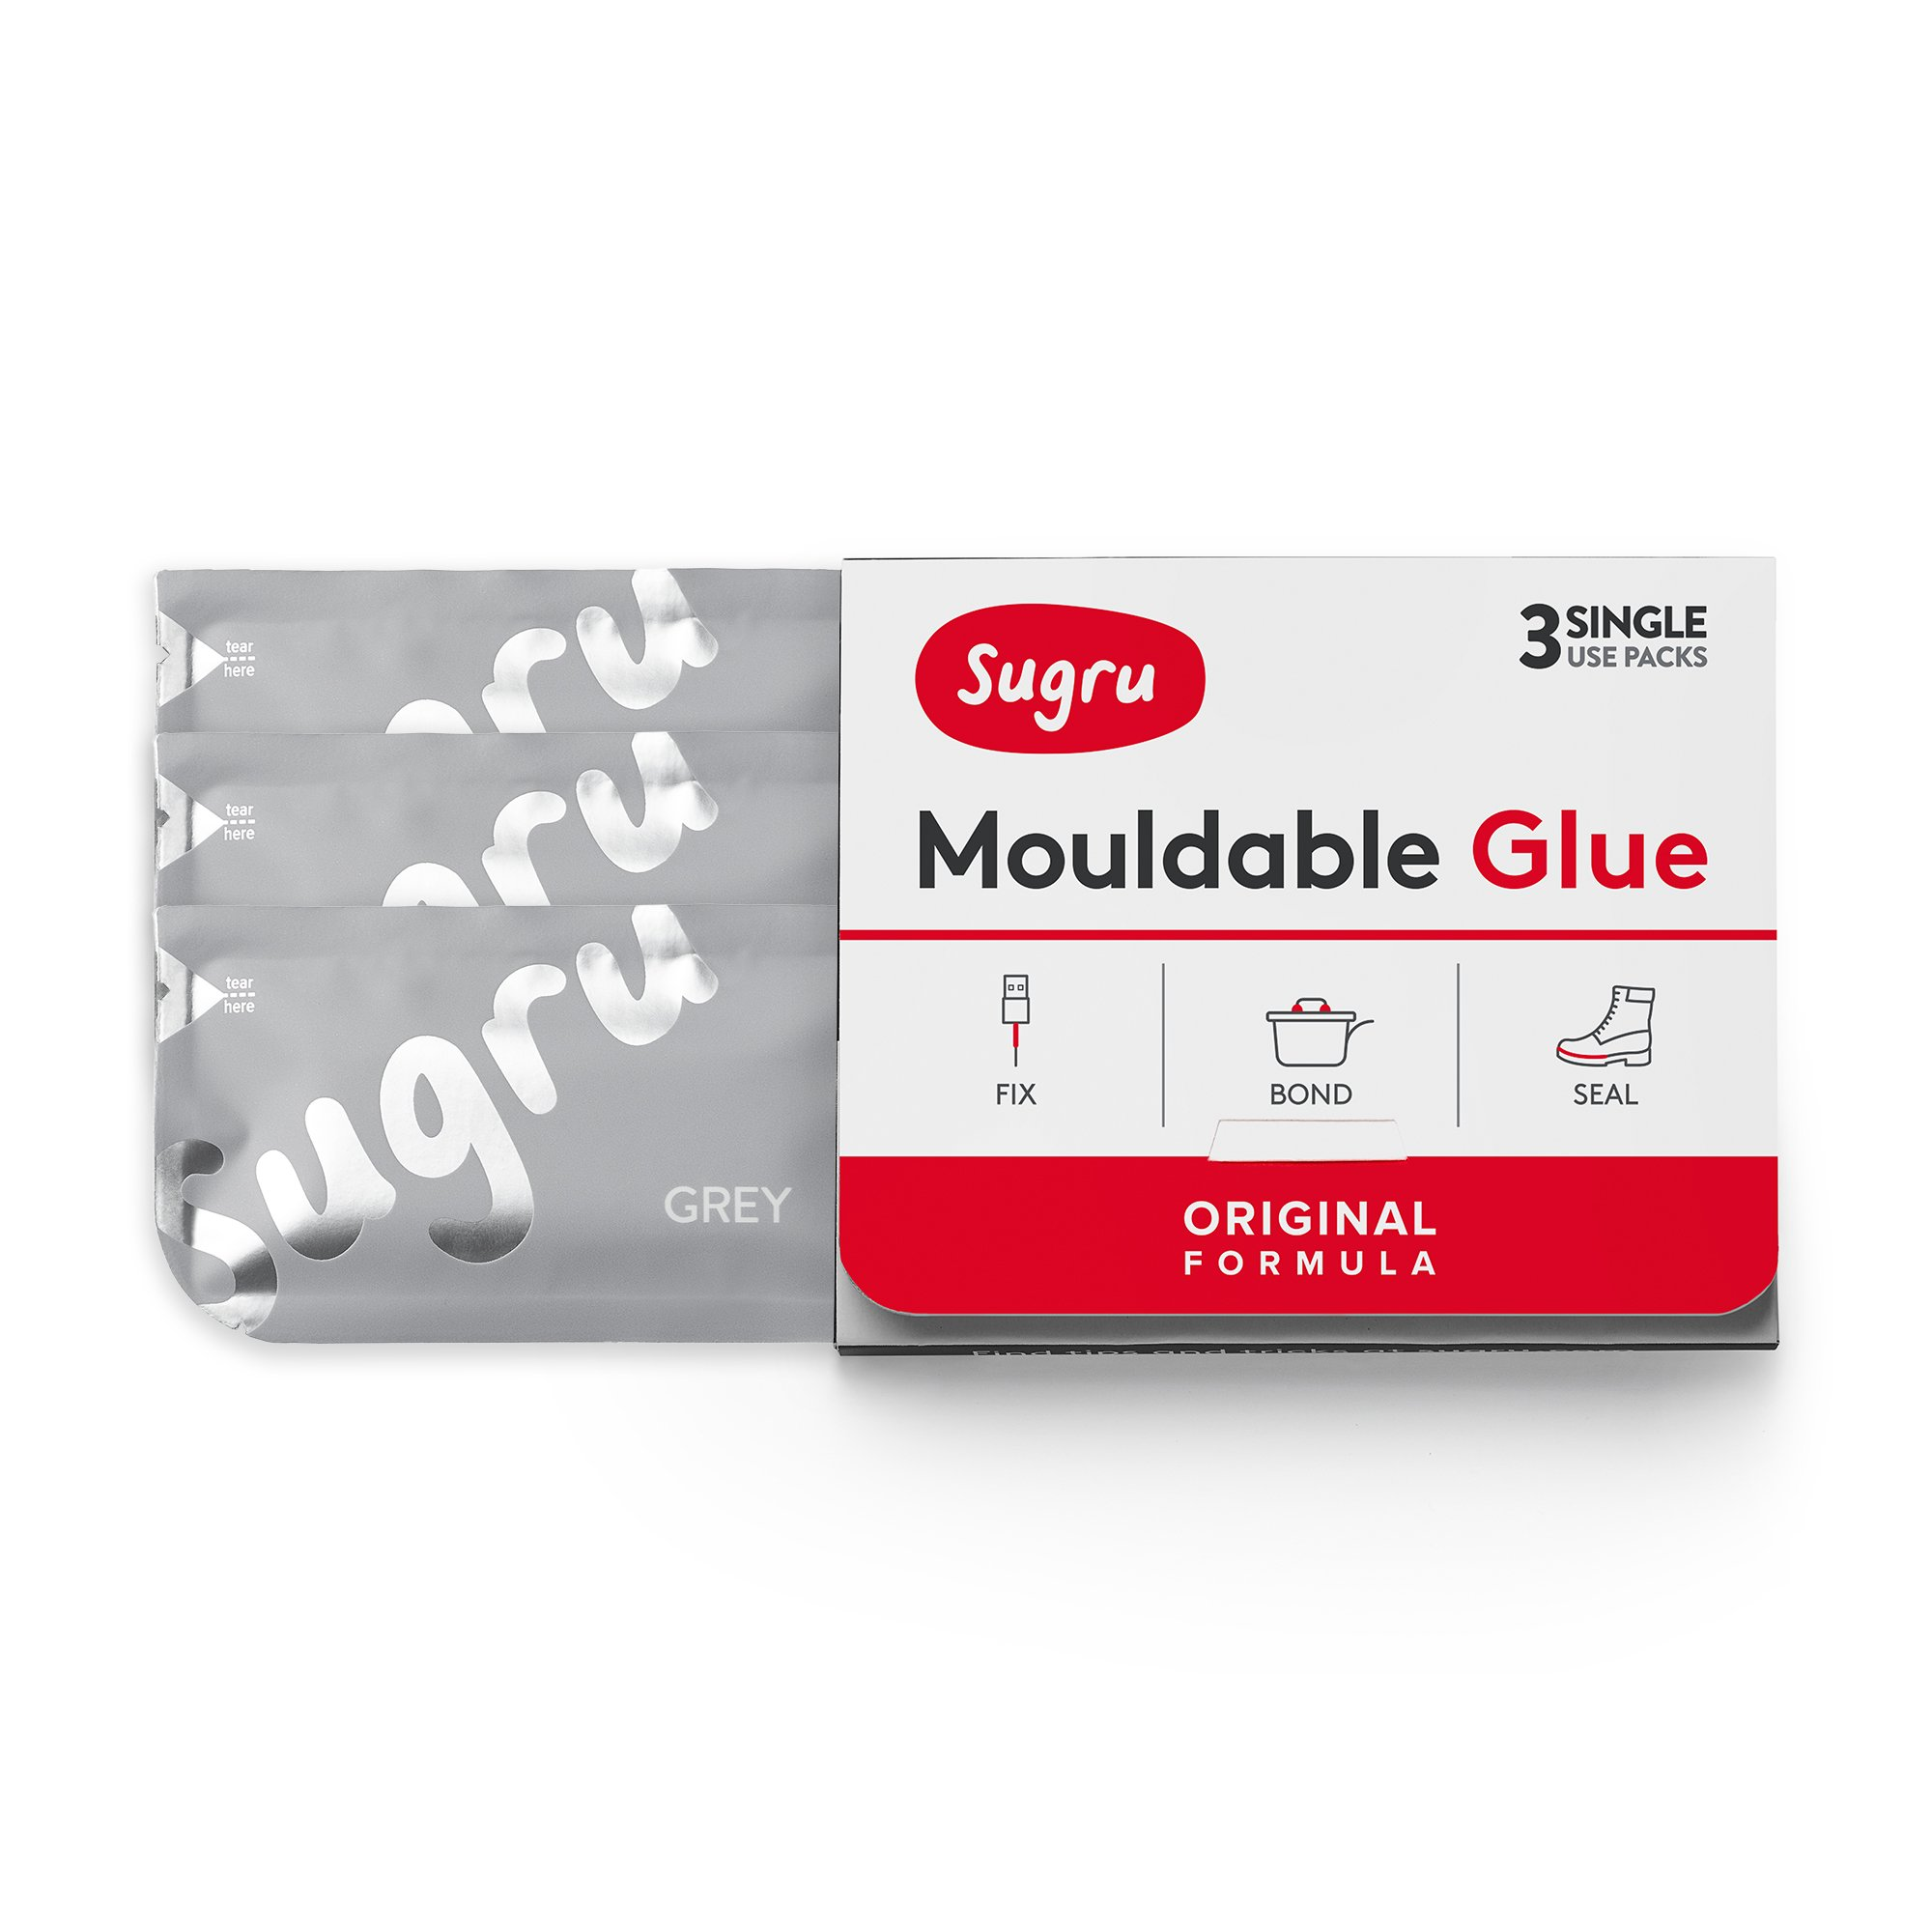 Mouldable Glue by Sugru